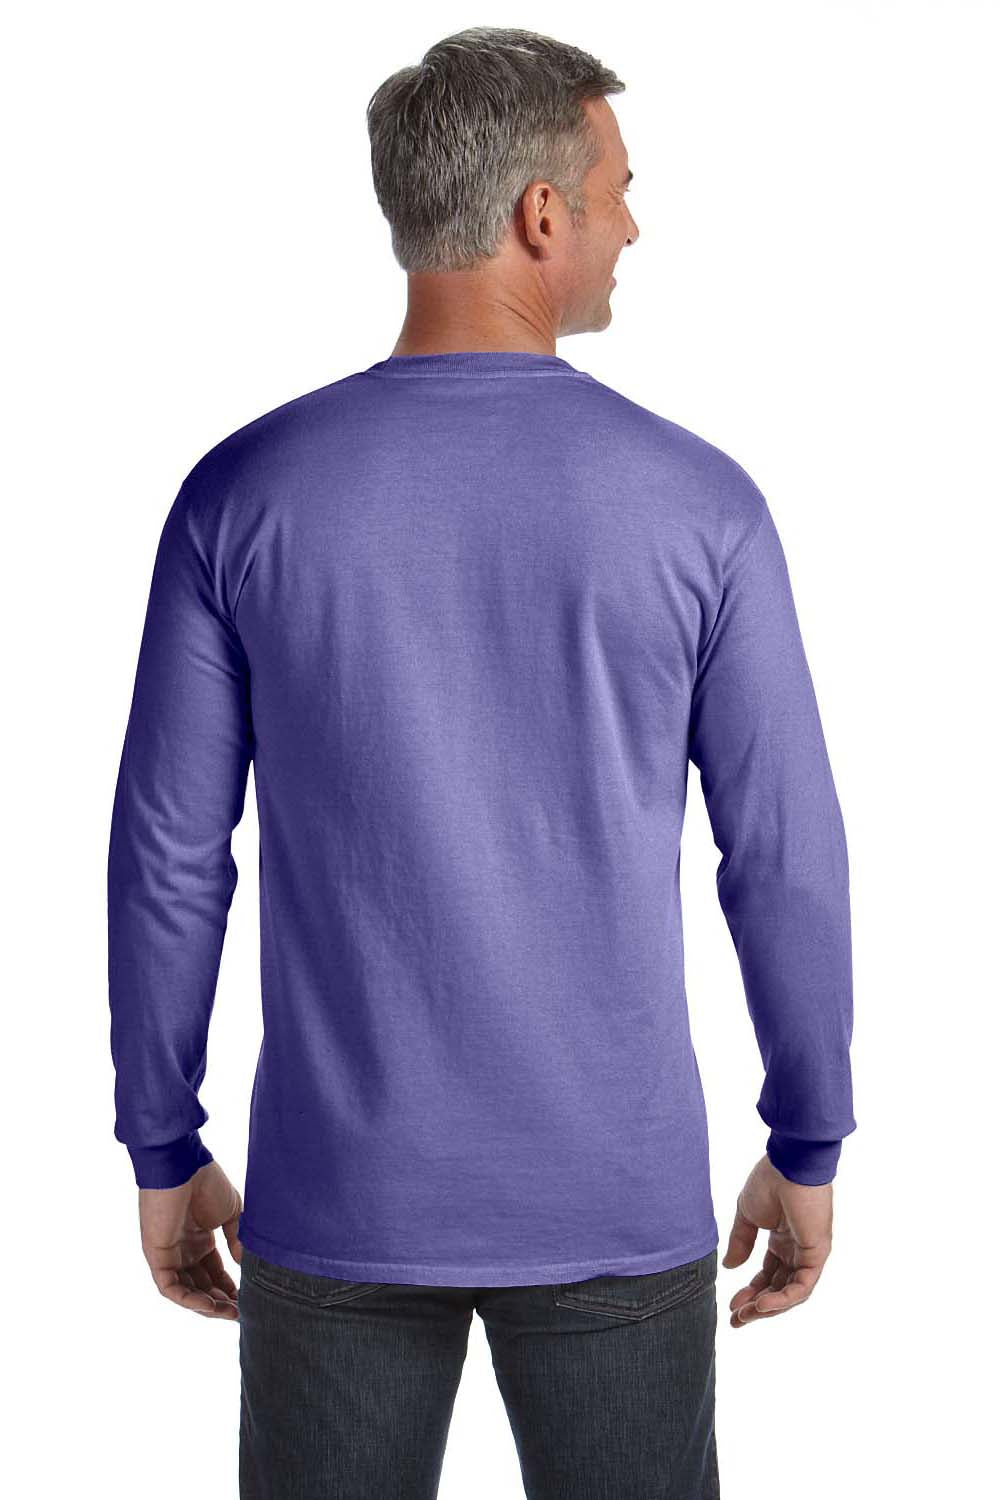 Comfort Colors C4410 Mens Long Sleeve Crewneck T-Shirt w/ Pocket Violet Purple Back